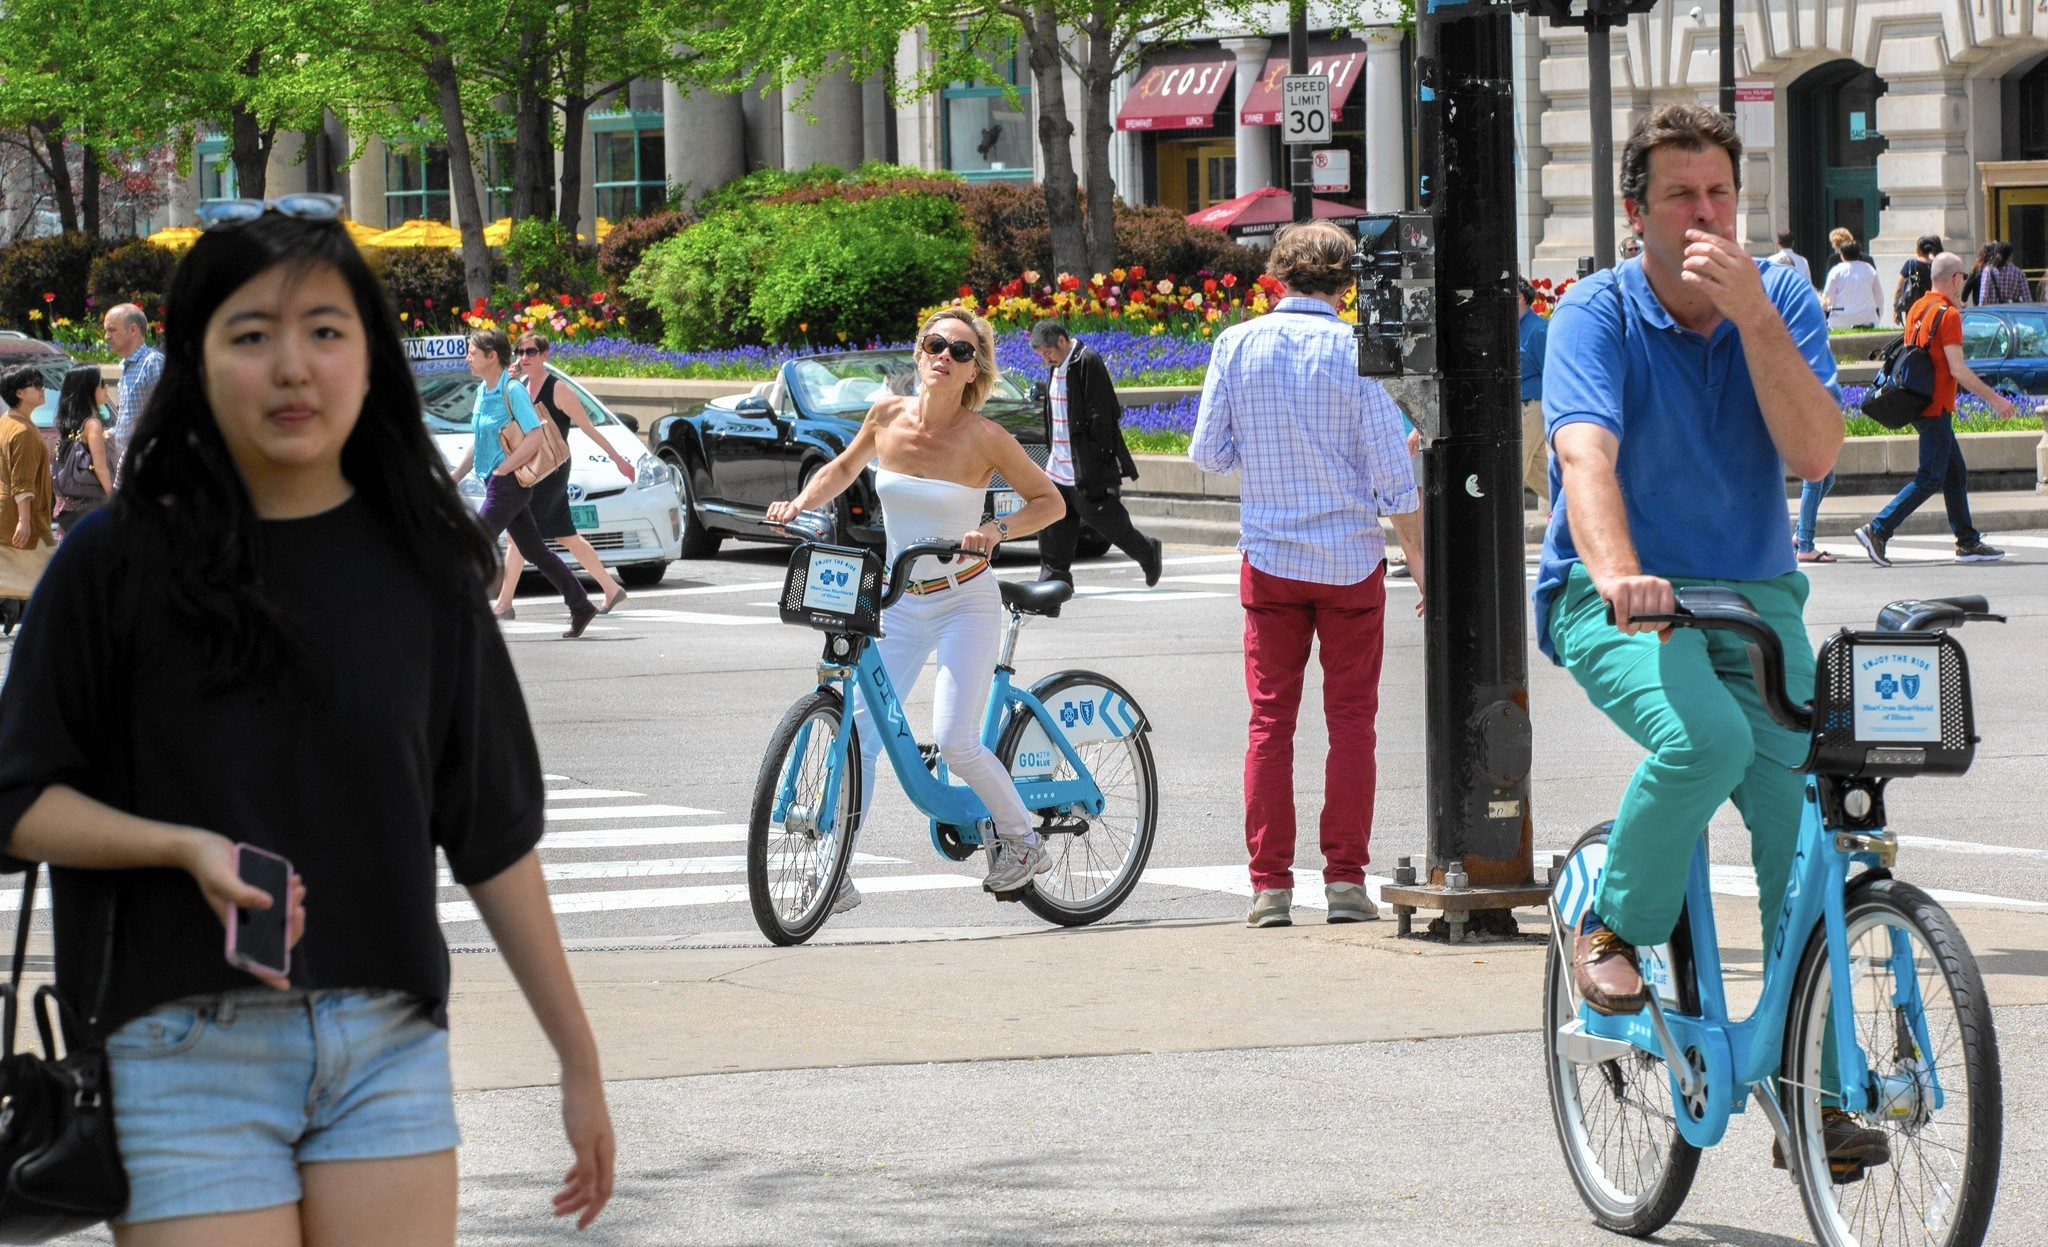 Best ways to experience Chicago without a car